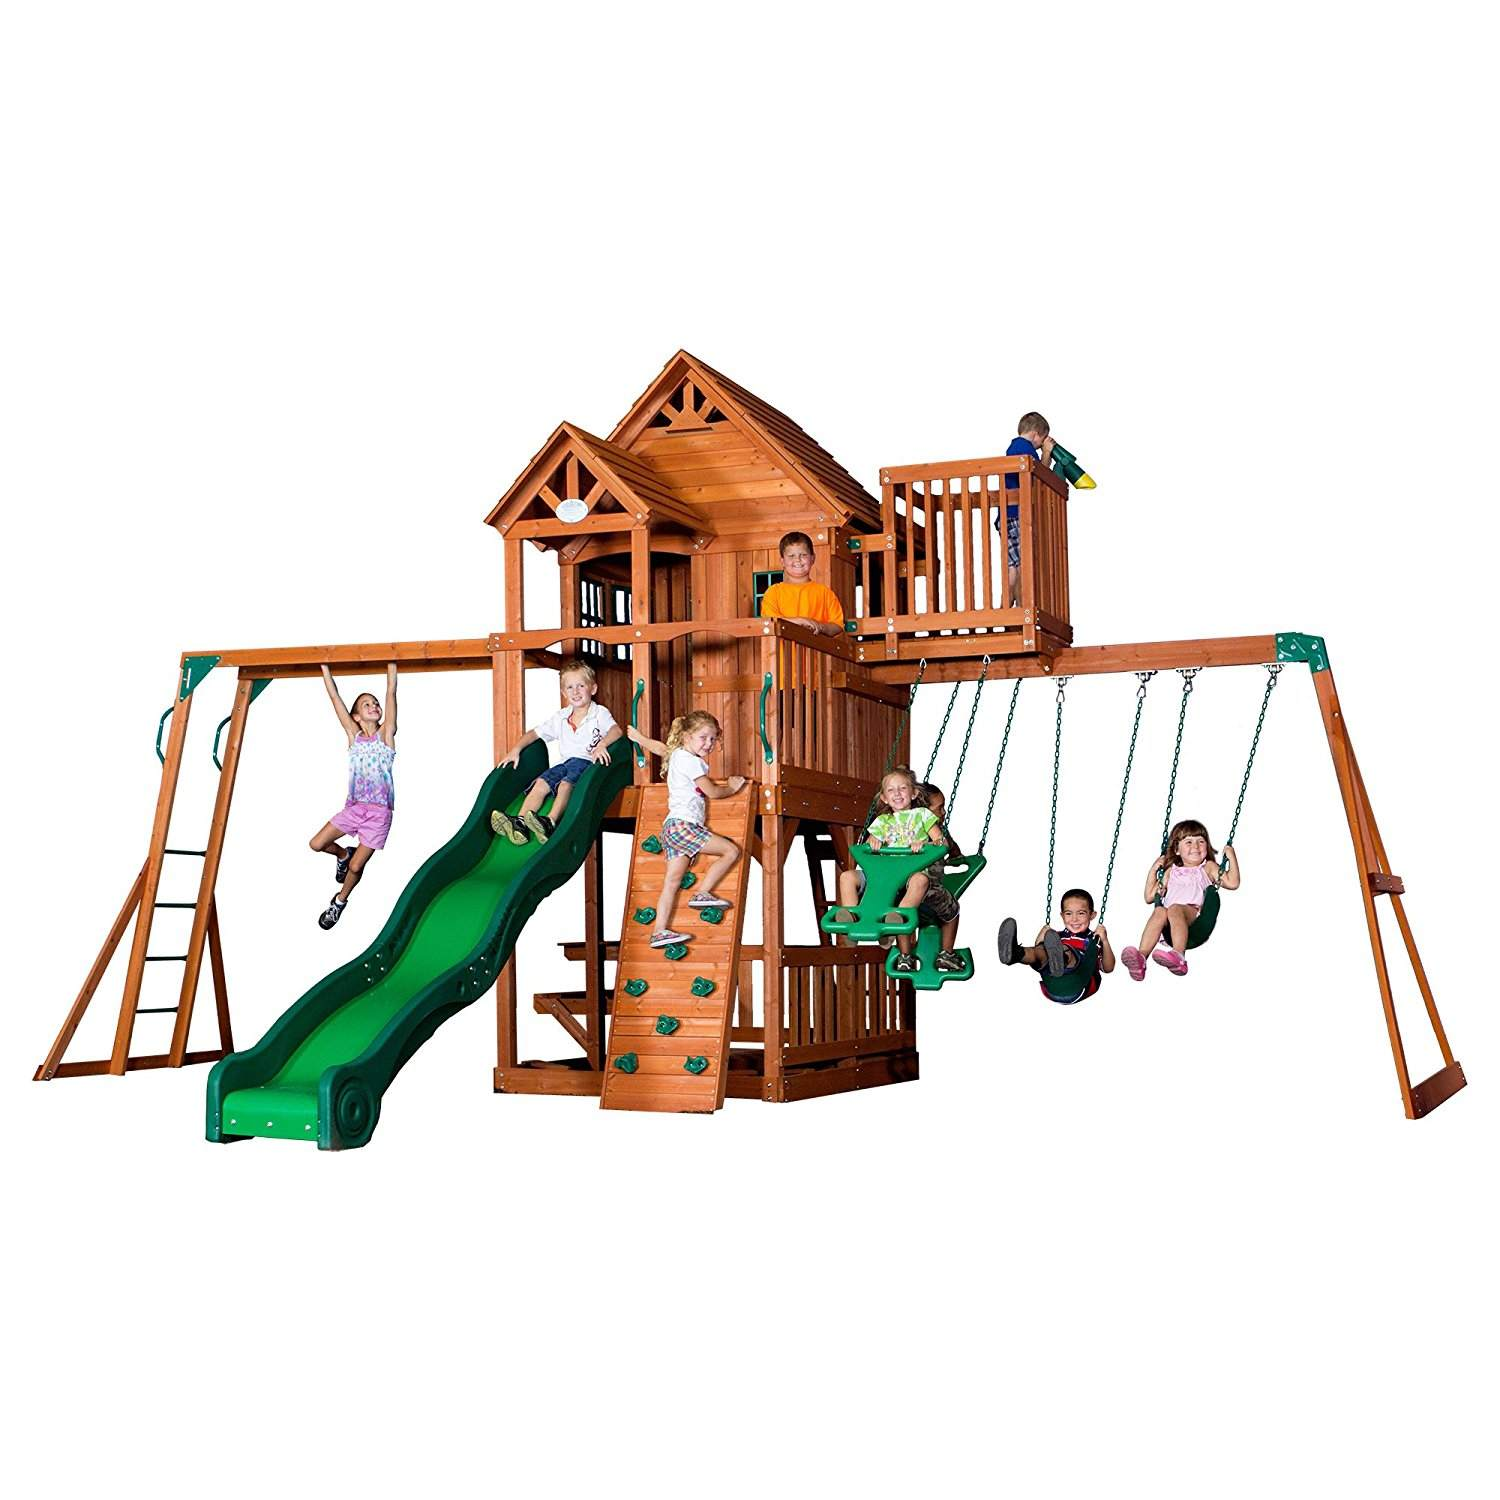 outdoor smothery playset playground cedar gallery ideas lifetime together ground video graceful at summit and also with costco sets set genuine simple shelbyville play along swing gorilla dk to